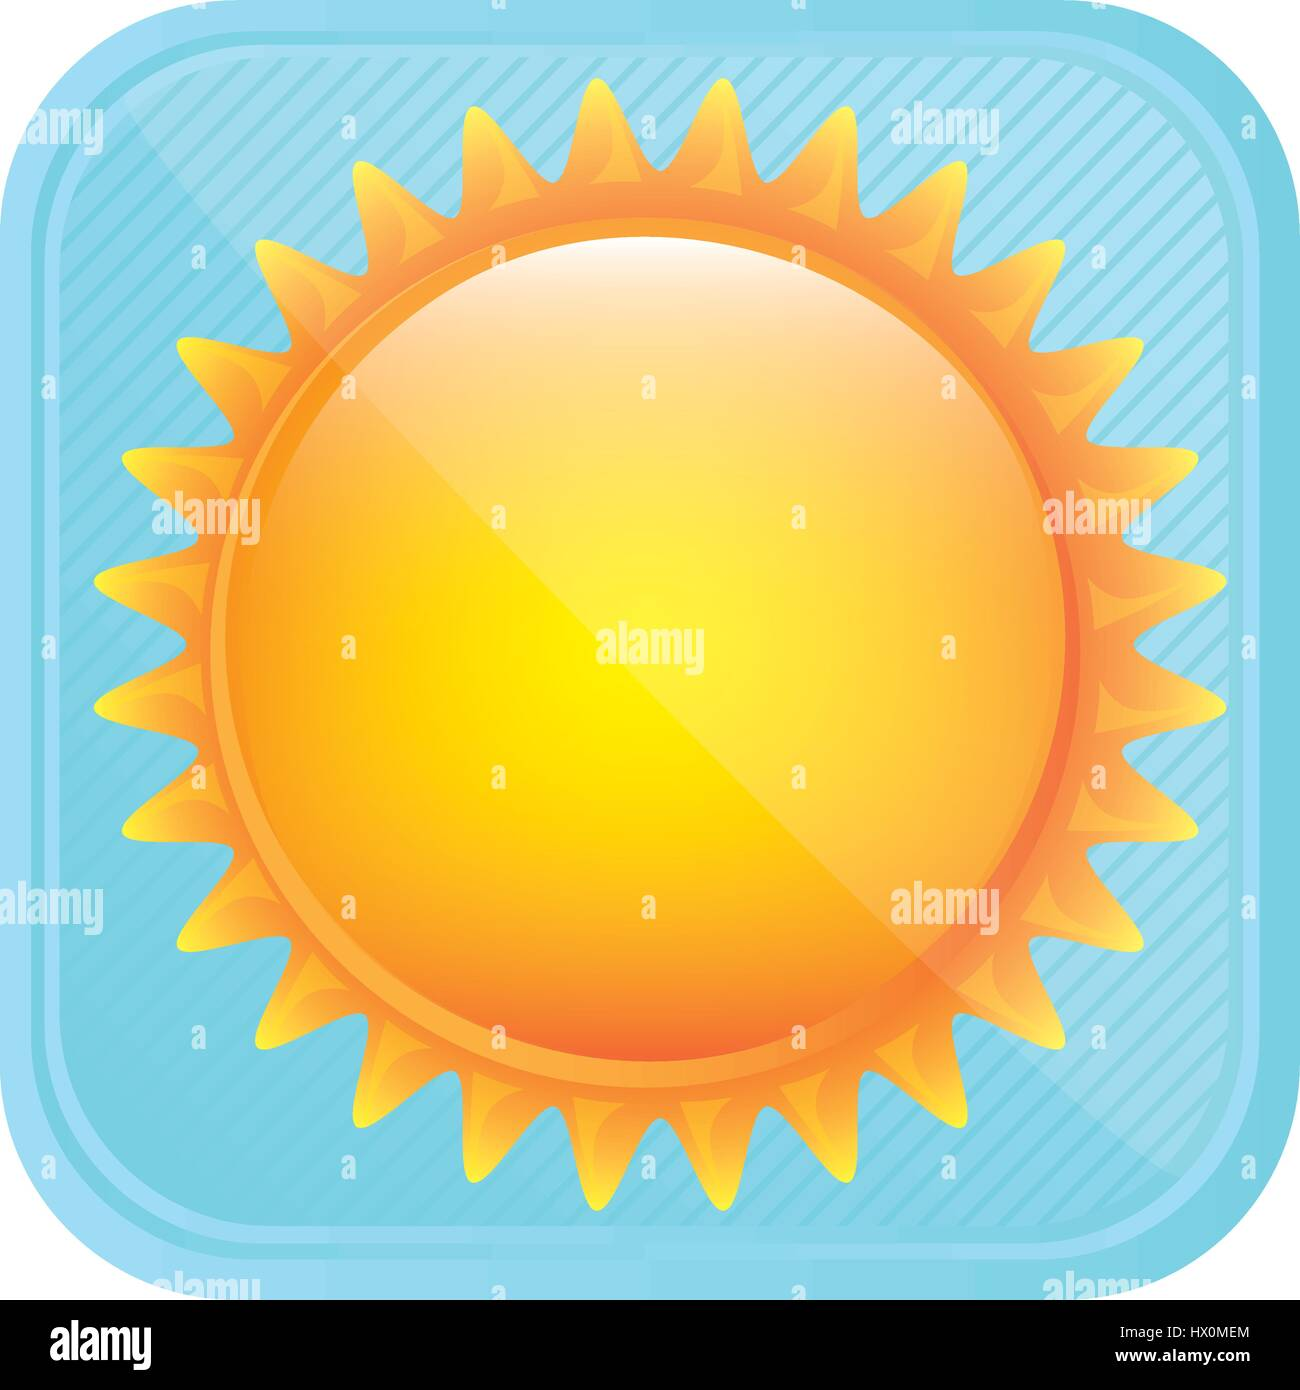 yellow light sun icon - Stock Image